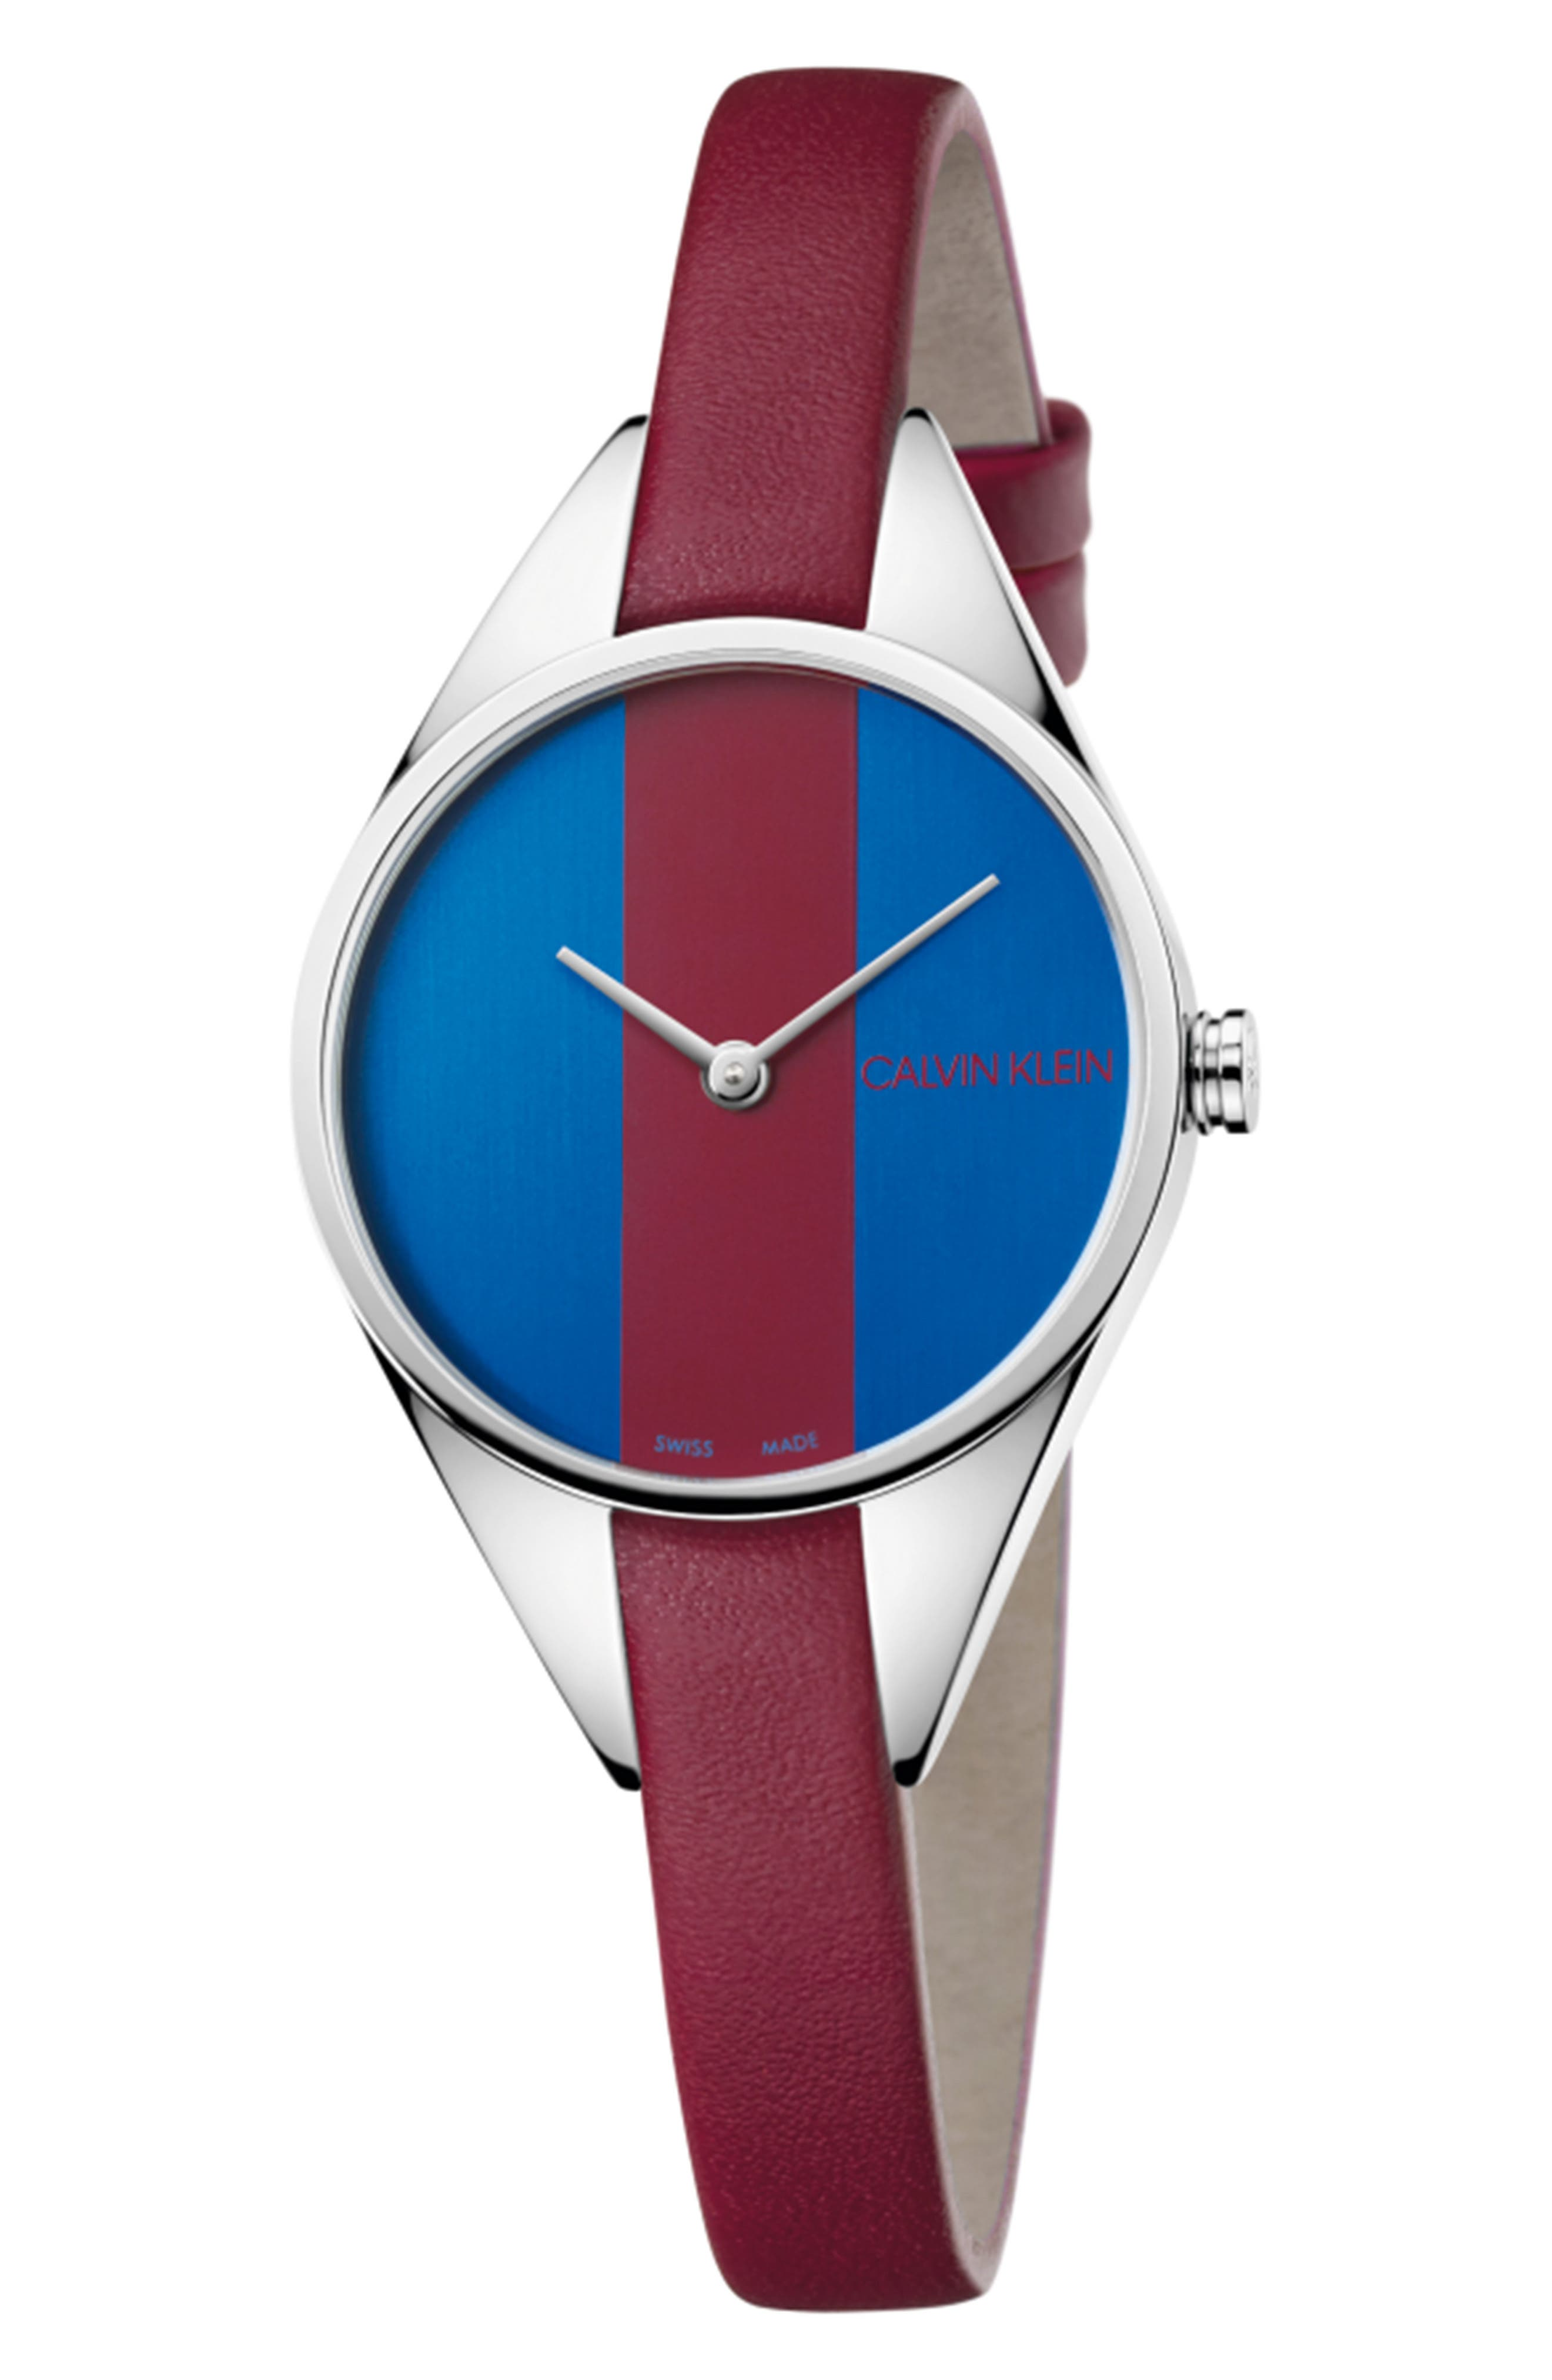 CALVIN KLEIN Achieve Rebel Leather Band Watch, 29mm, Main, color, RED/ BLUE/ SILVER